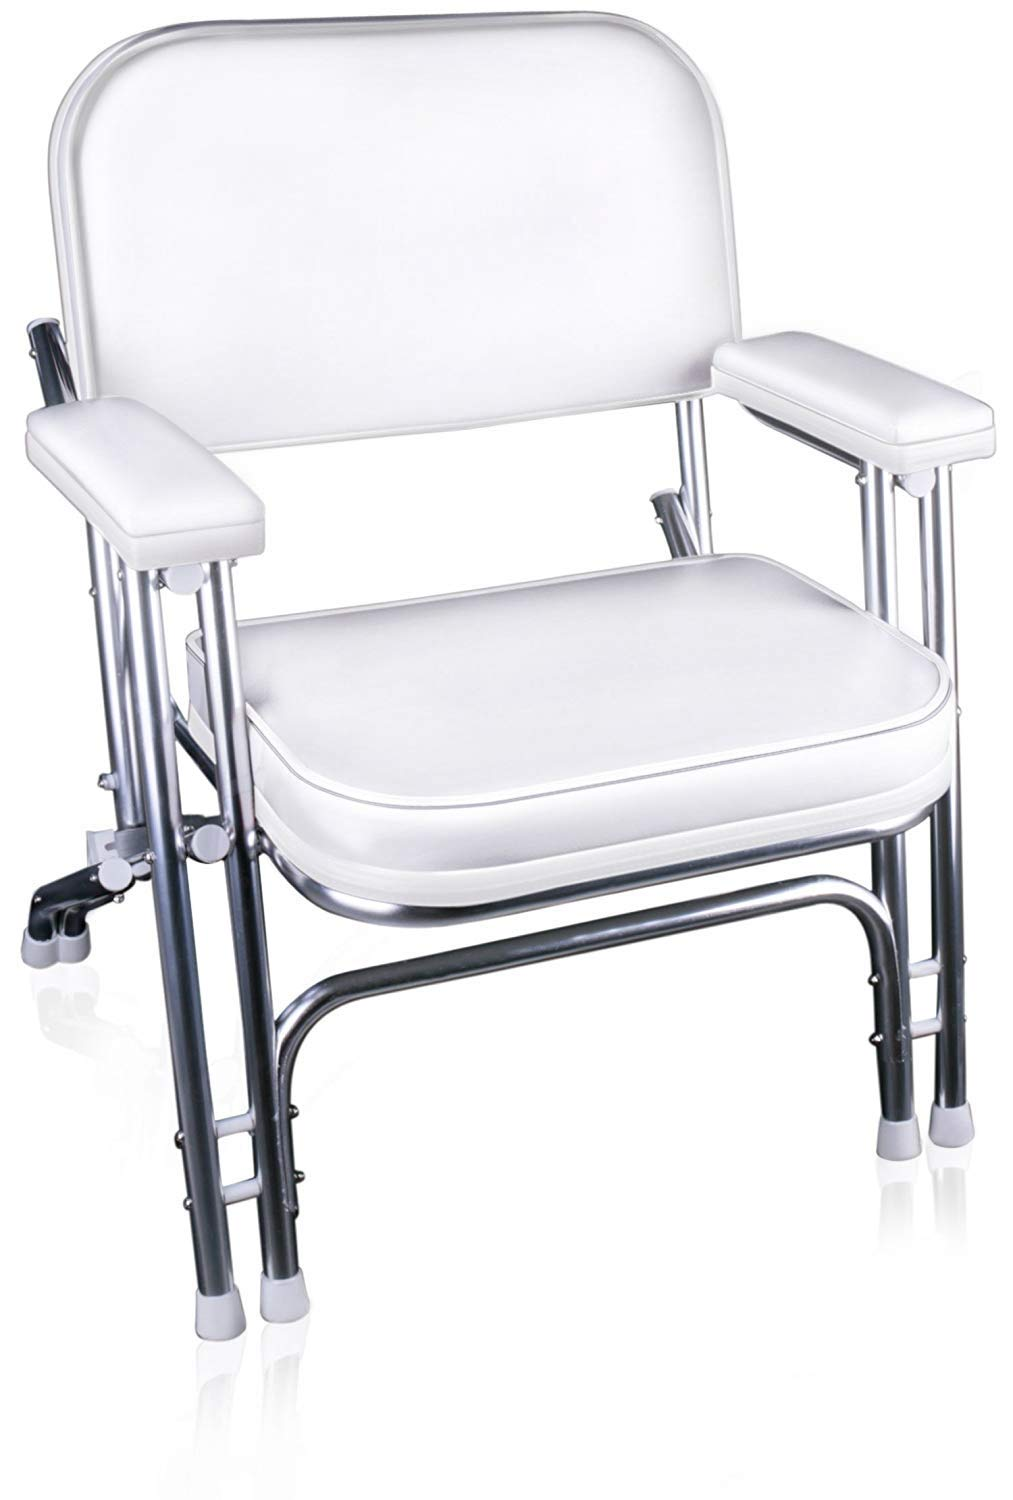 Leader Accessories Portable Folding Deck Chair with Aluminum Frame and Armrests (White) by Leader Accessories